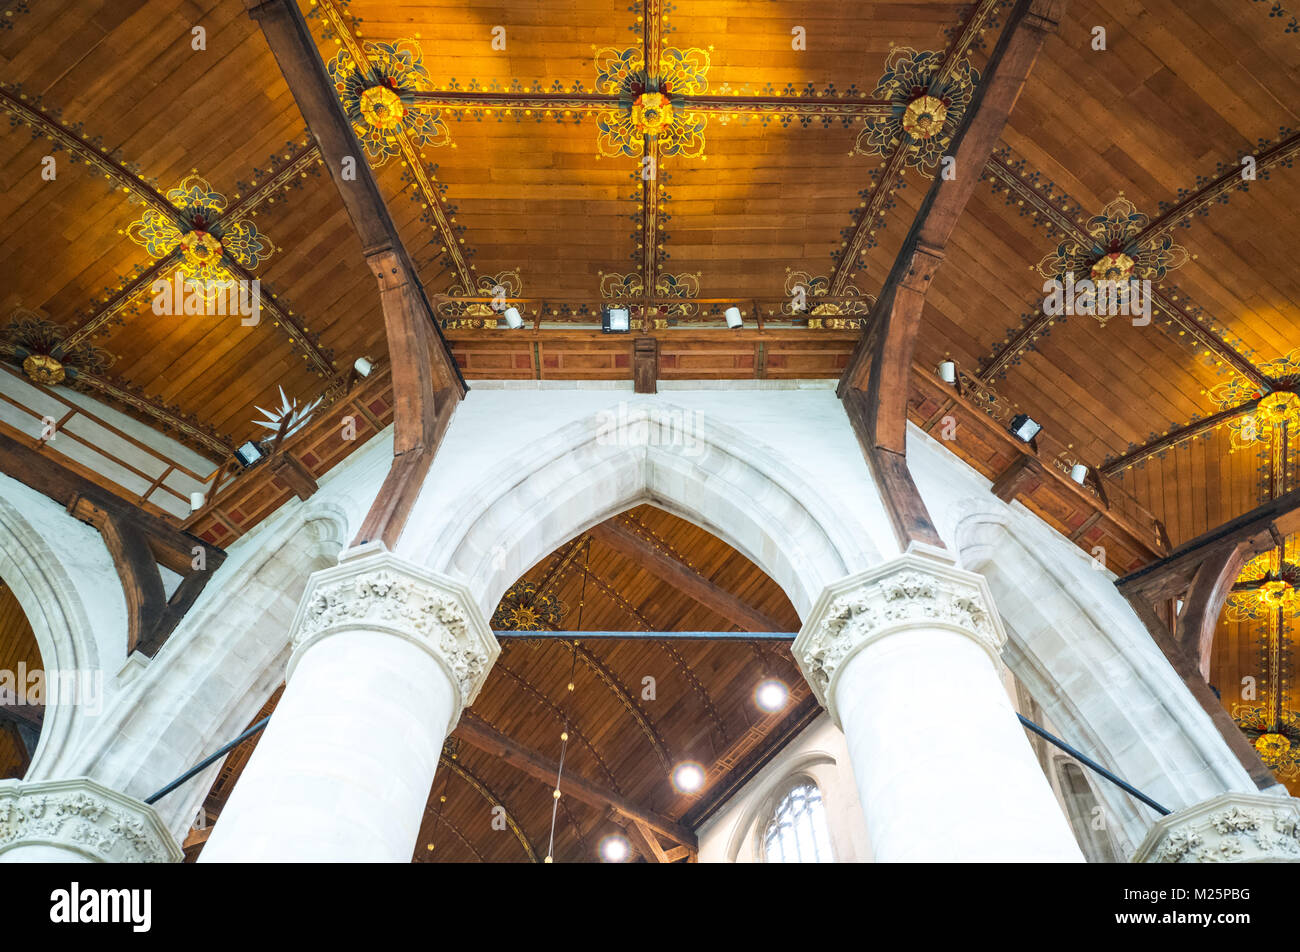 Netherlands, Rotterdam, architectural detail of the choir area of the San Lorenzo church - Stock Image